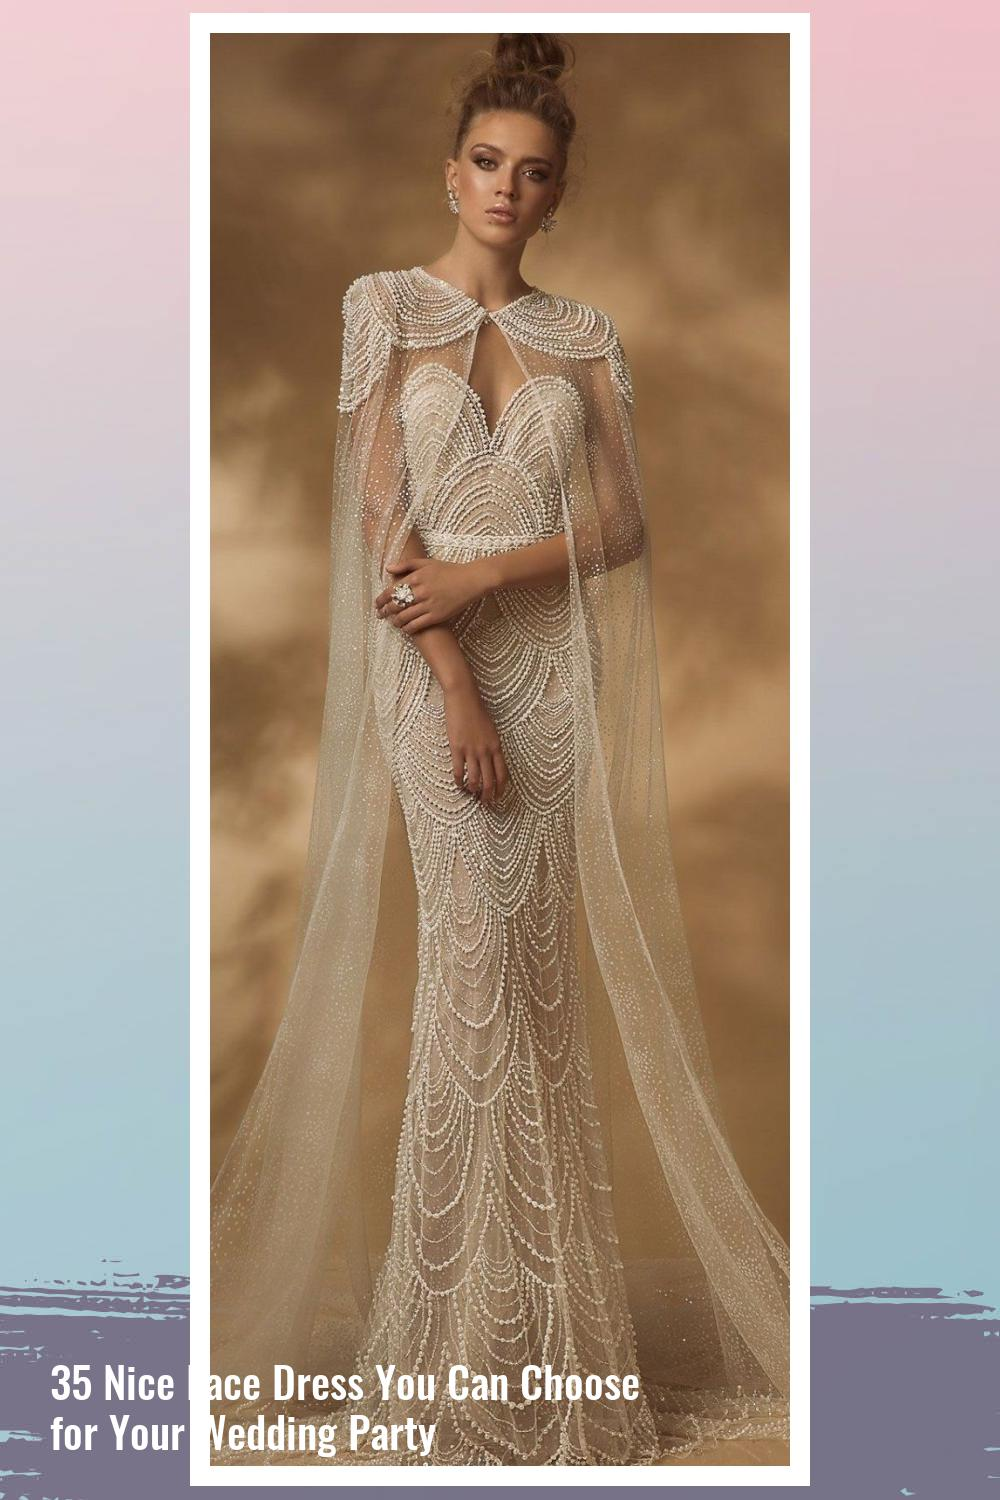 35 Nice Lace Dress You Can Choose for Your Wedding Party 32